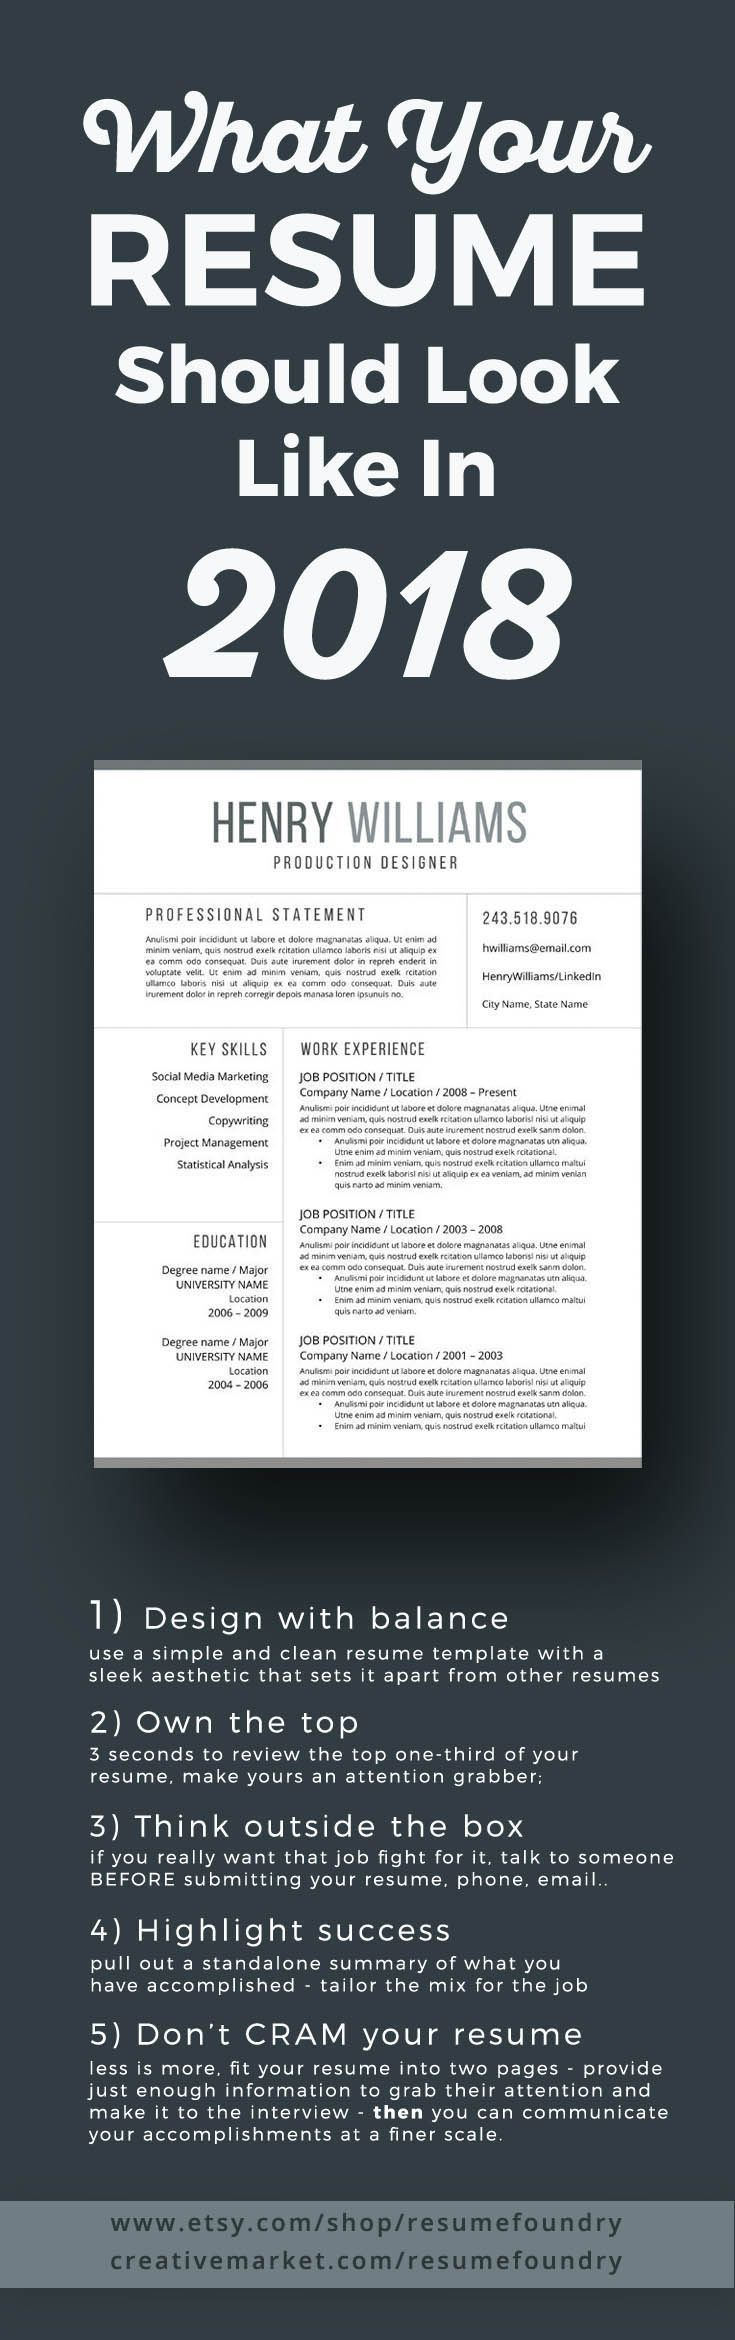 resume tips   the new look of resume templates for 2018